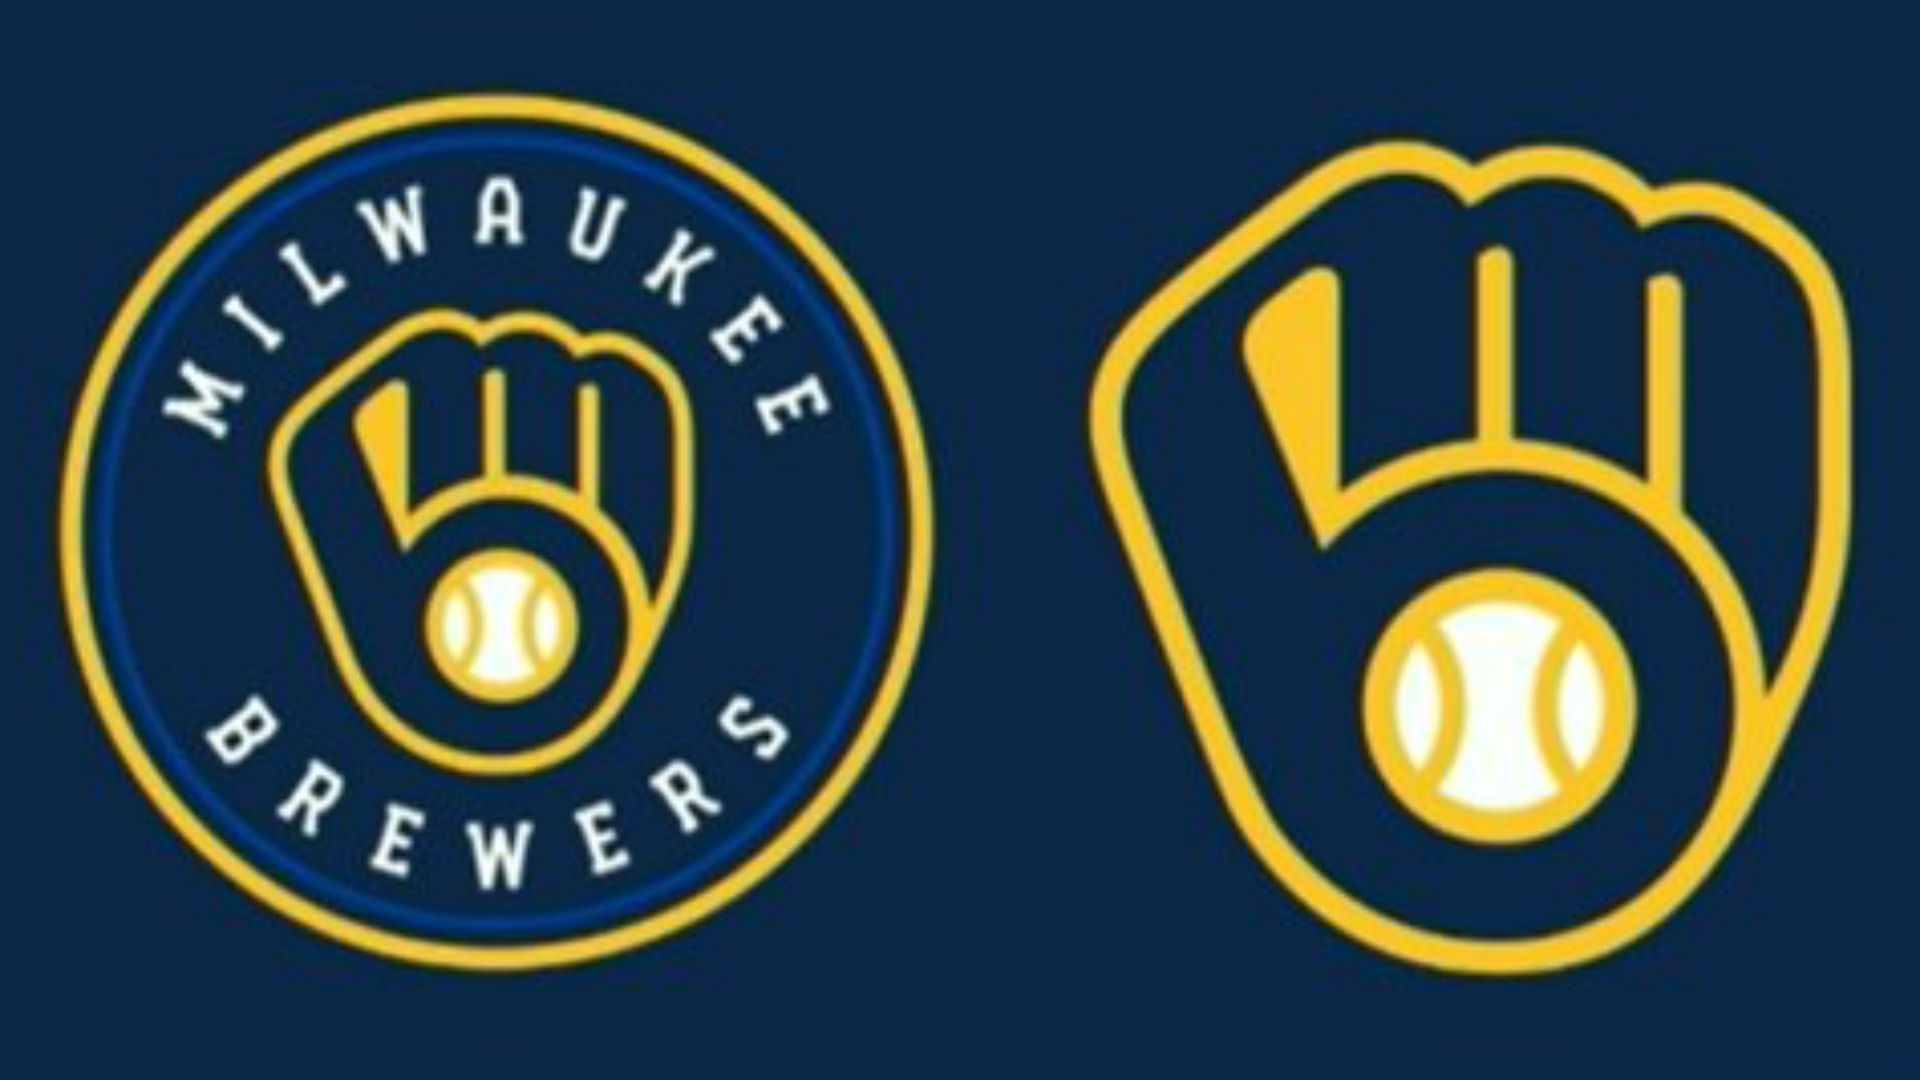 The Brewers revealed new uniforms, reimagined their old logo and it's all so beautiful